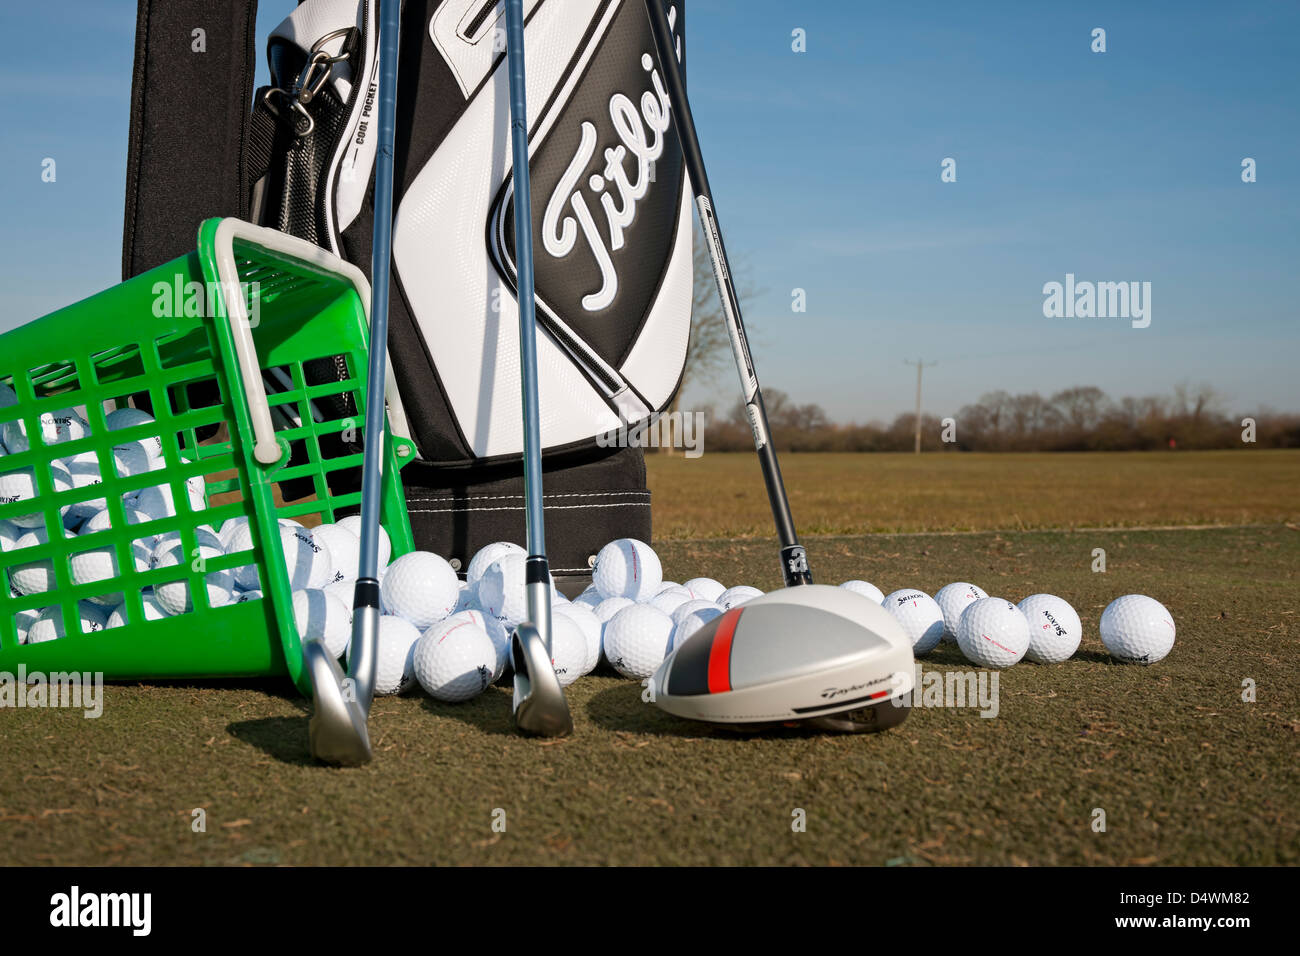 Golf bag and clubs with range balls on a golf practice ground England UK United Kingdom GB Great Britain - Stock Image